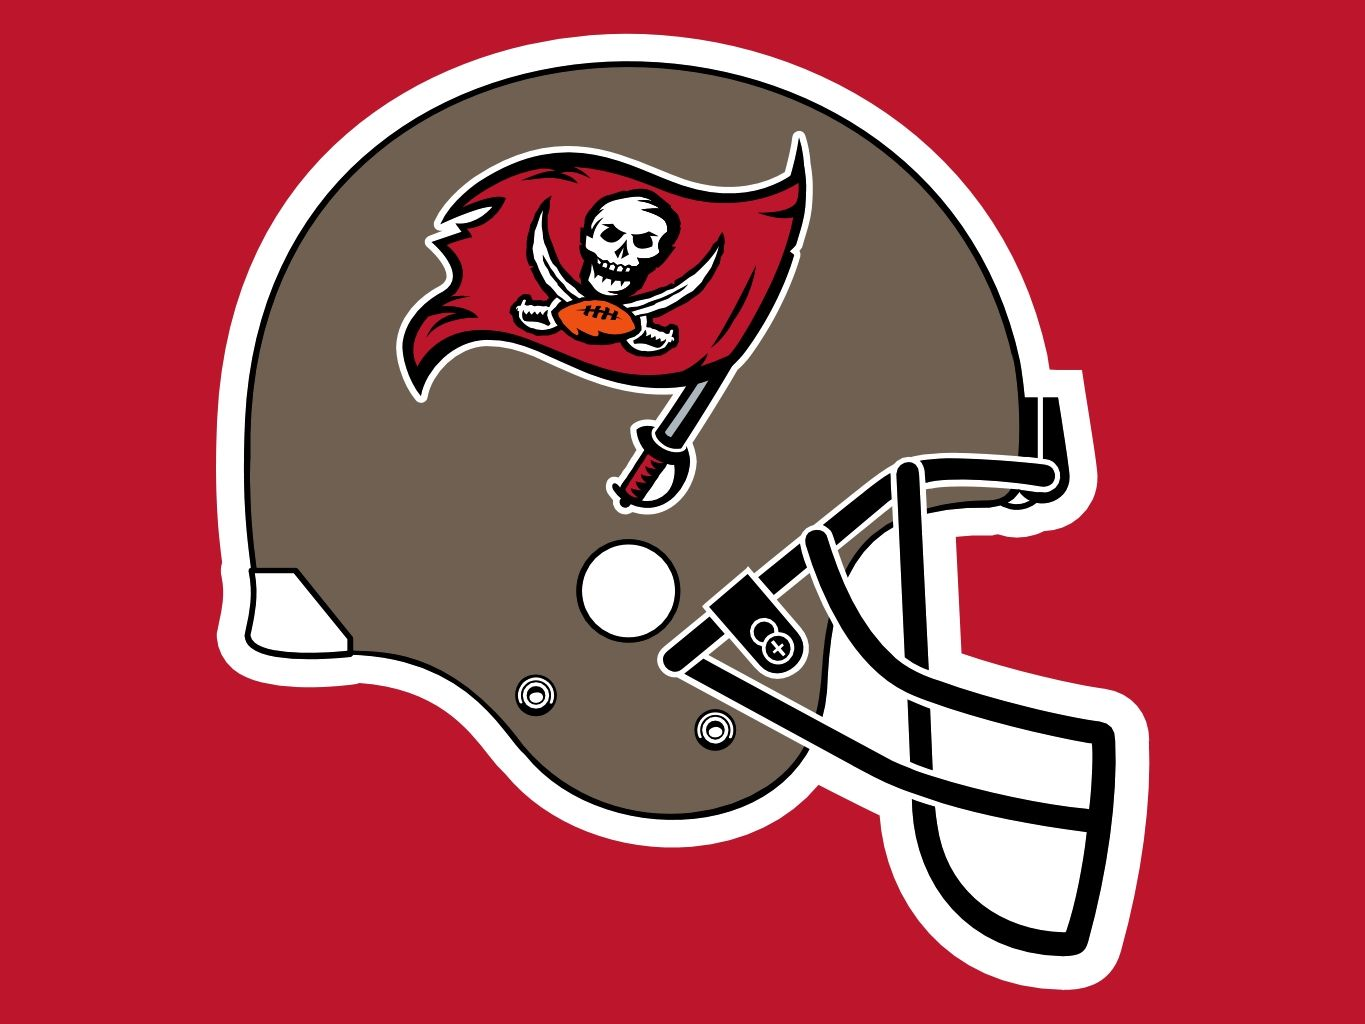 Tampa Bay Buccaneers National Football League Sports Logo Tampa Bay Buccaneers